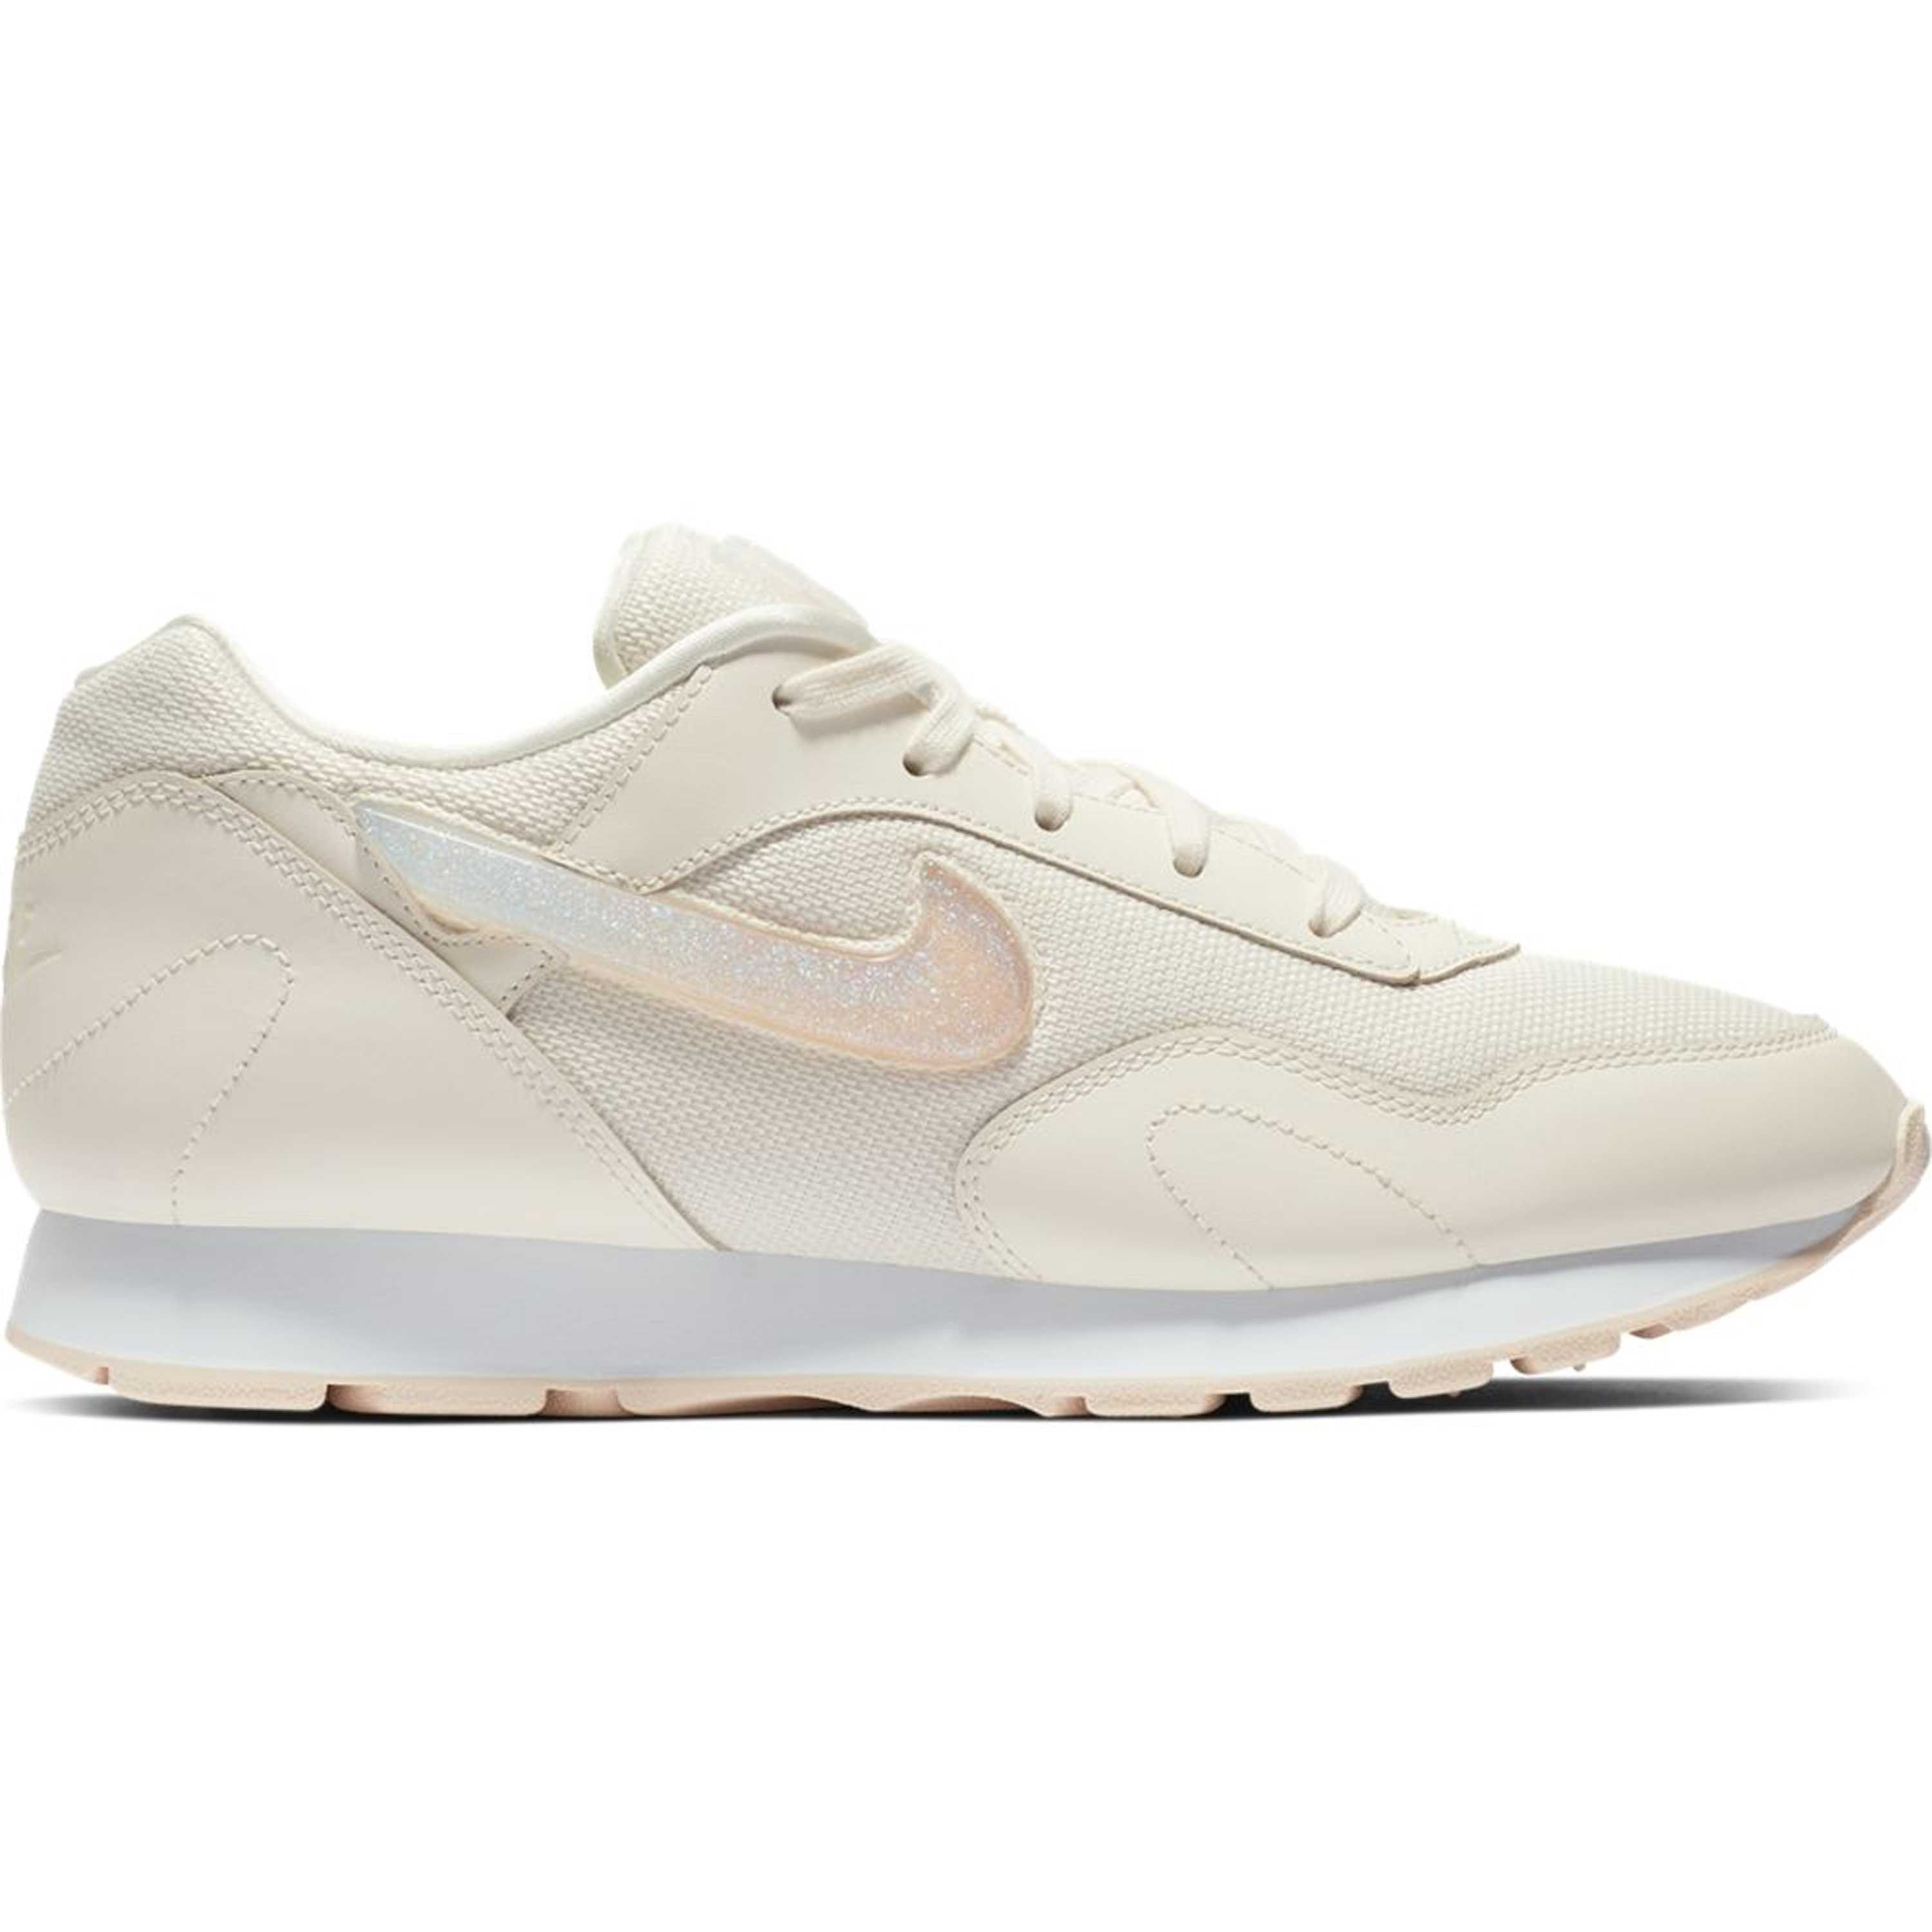 Nike Outburst Jelly Puff Pale Ivory W